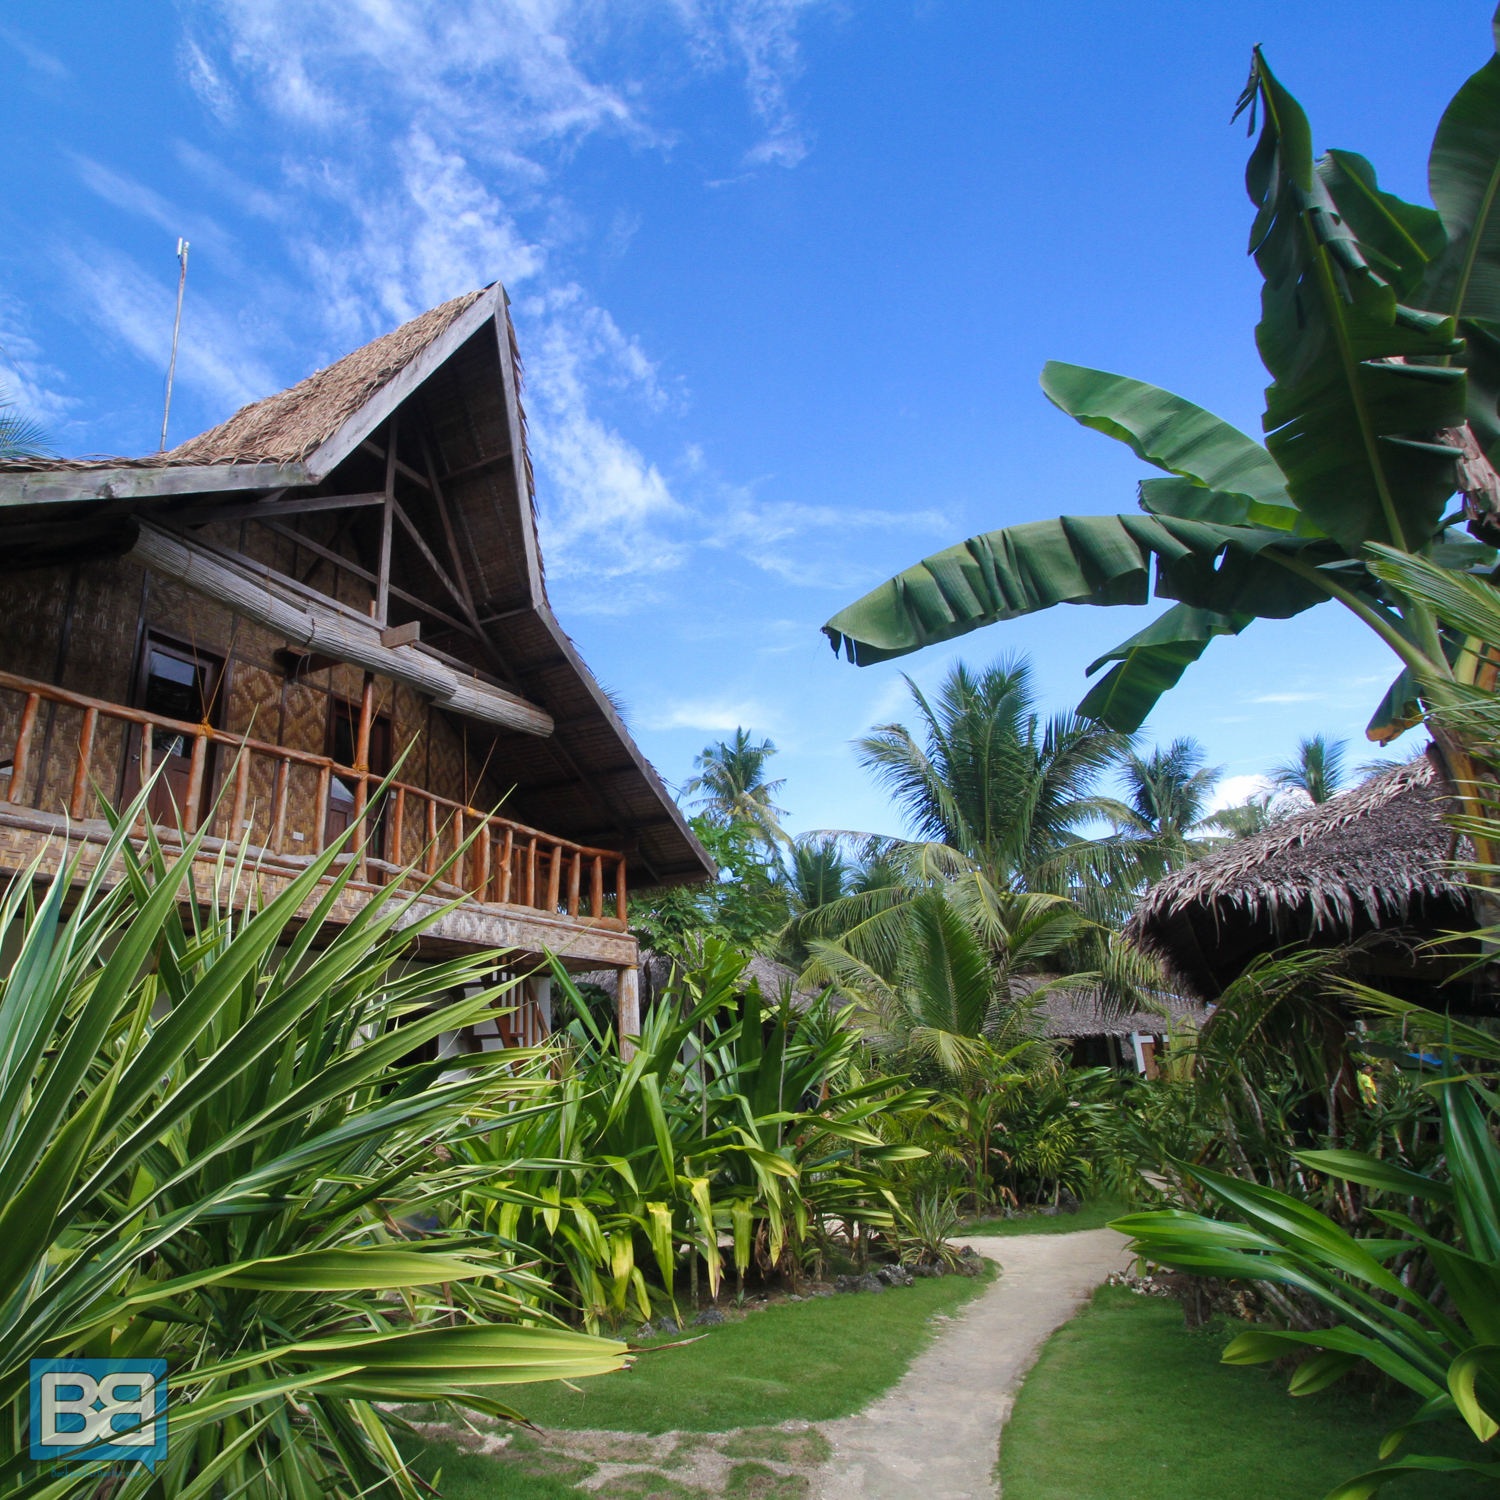 dcb224dc773b How Much To Budget For A Month In...The Philippines - Backpacker Banter